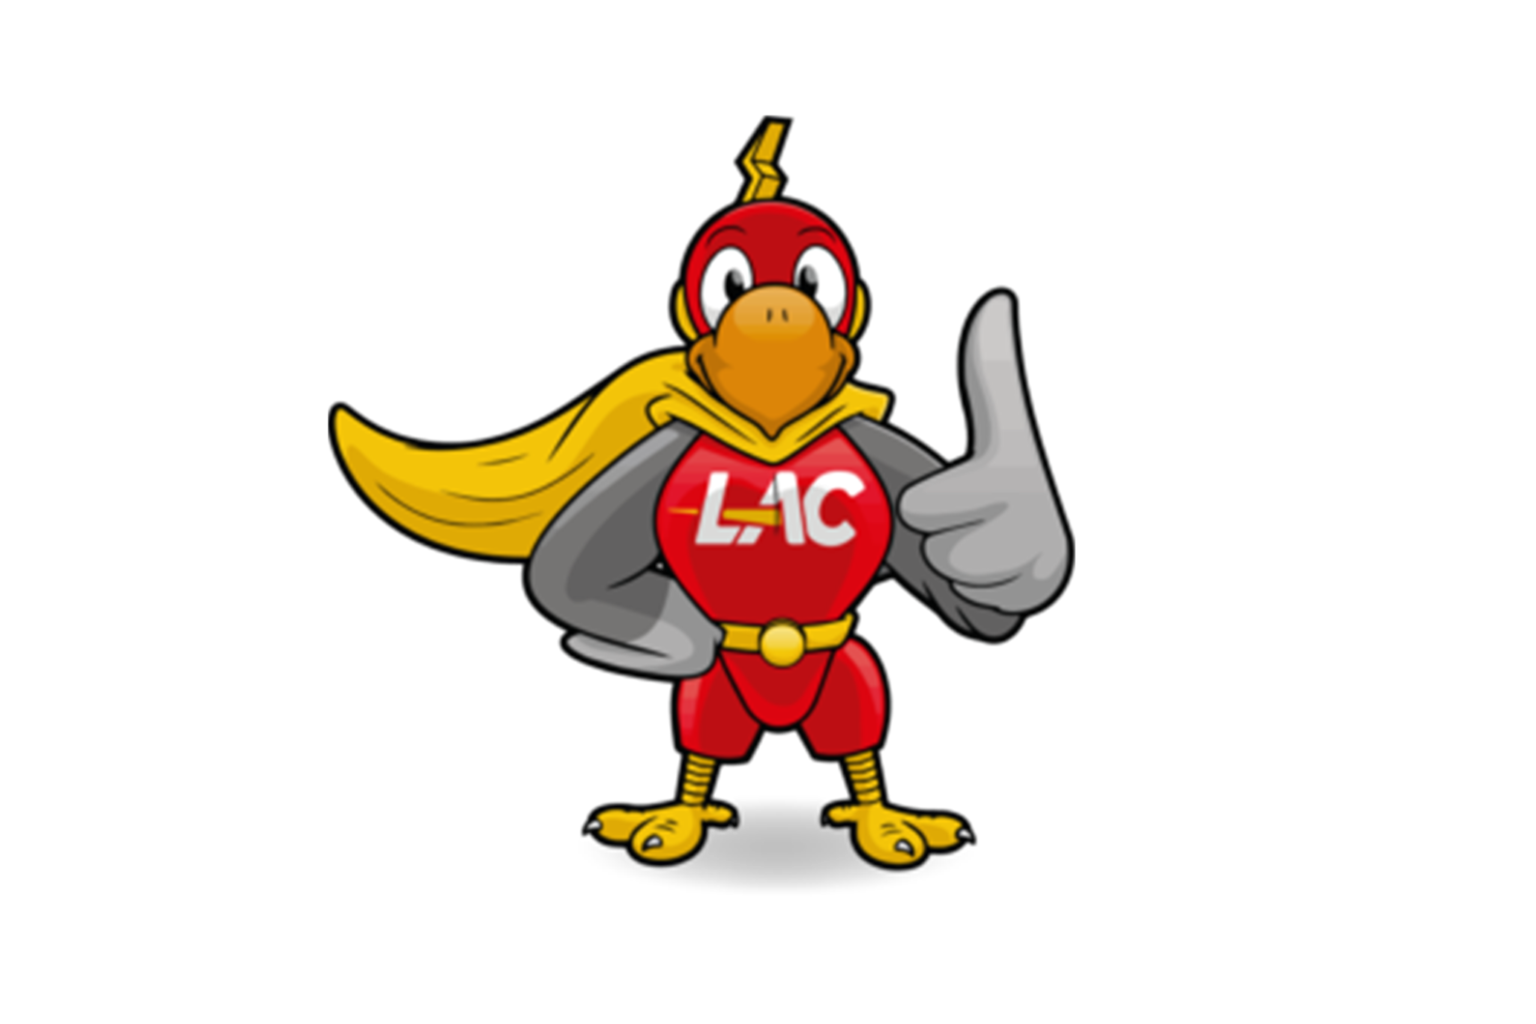 LAC Mascot Shipping to Latin American Cargo